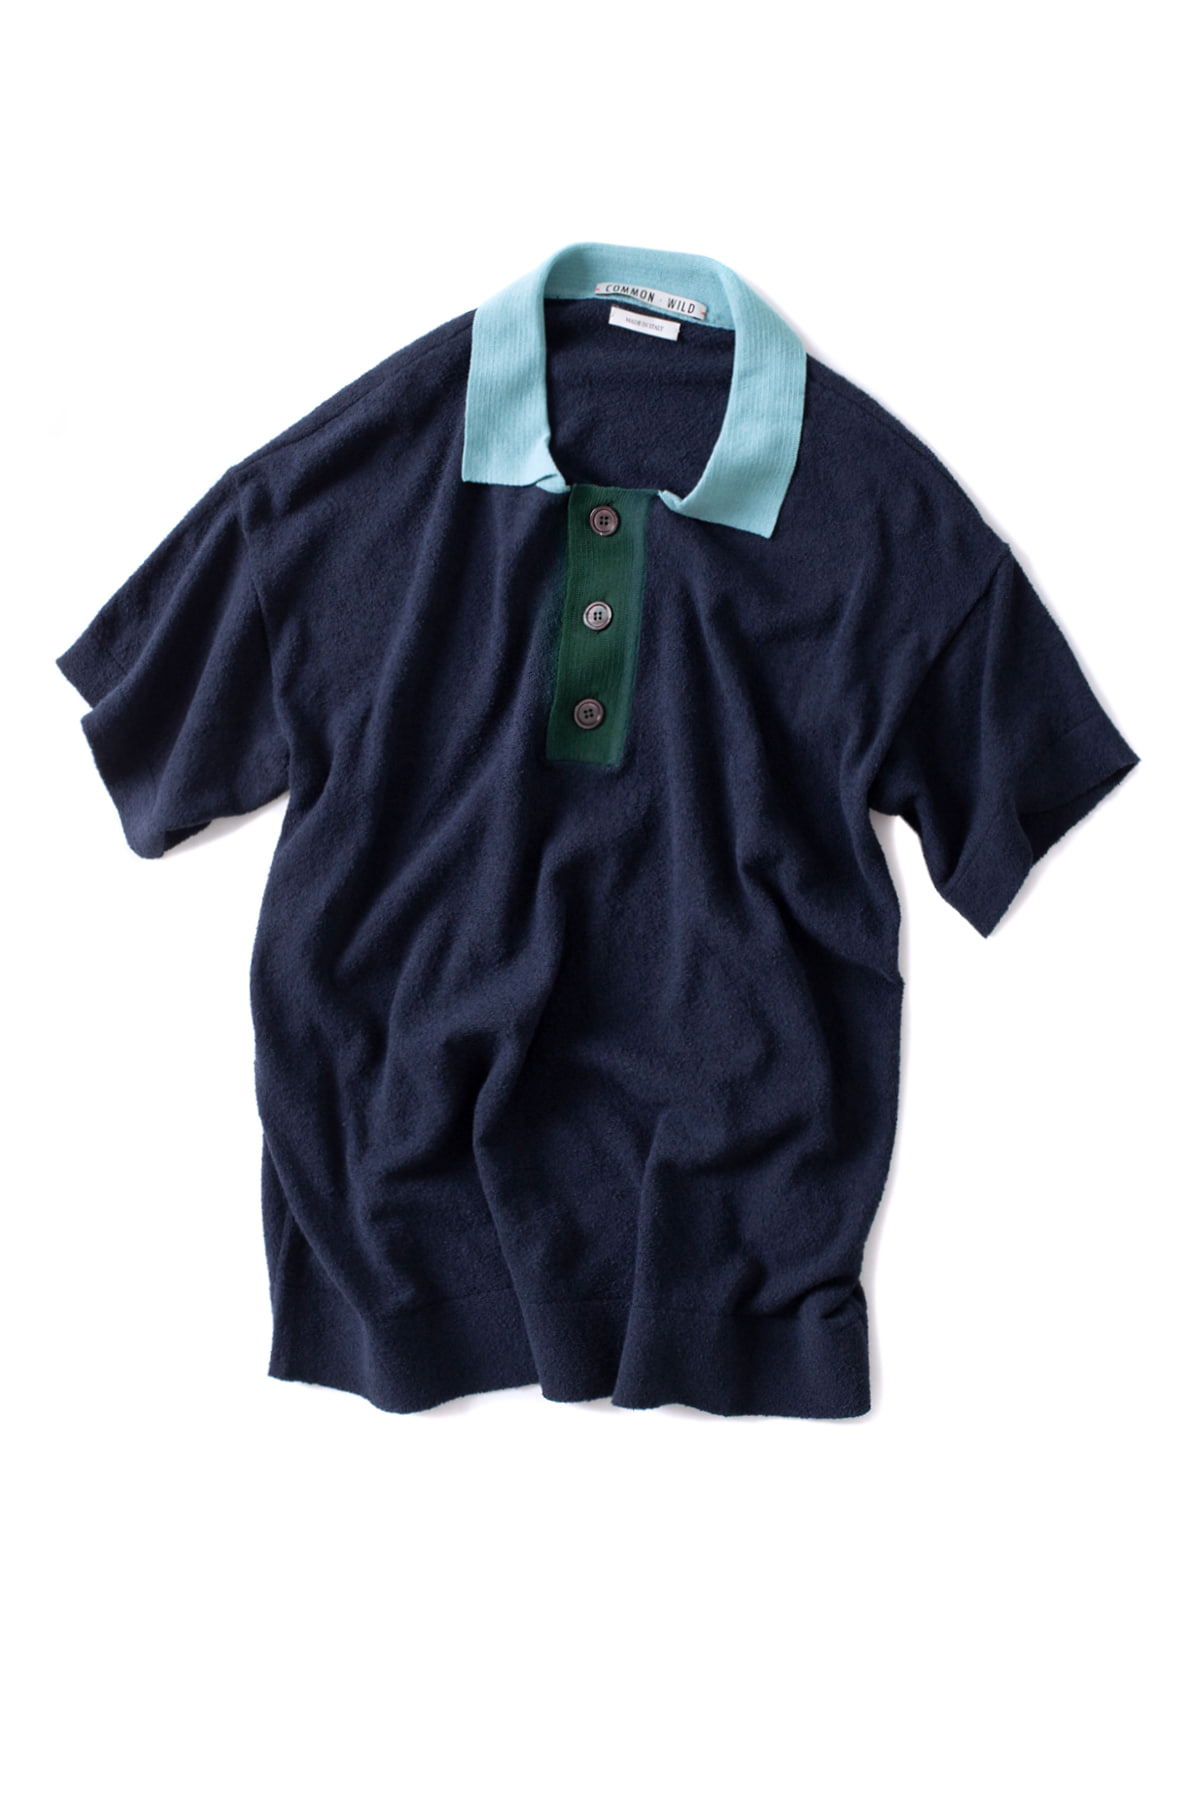 COMMON WILD : Polo Knit (Blue Navy)